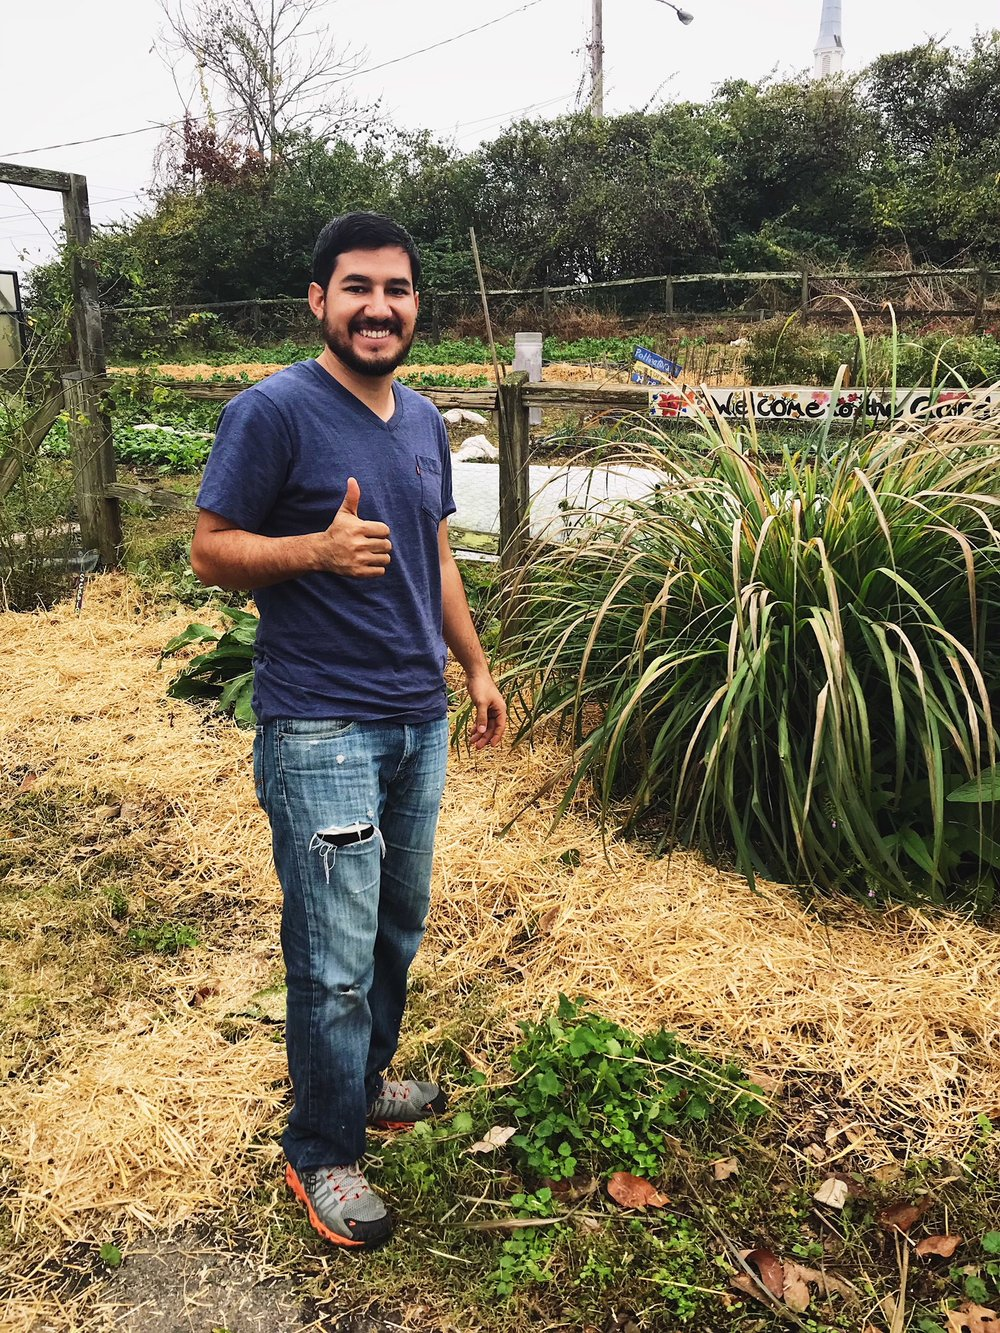 December 2017:  Eduardo has given over 45 hours in the garden over the past 3 months!His dedication is astounding;he's always the first one here and the last one to leave.Its great to have a volunteer with an amazing warmhearted spirit that gives back in his free time.